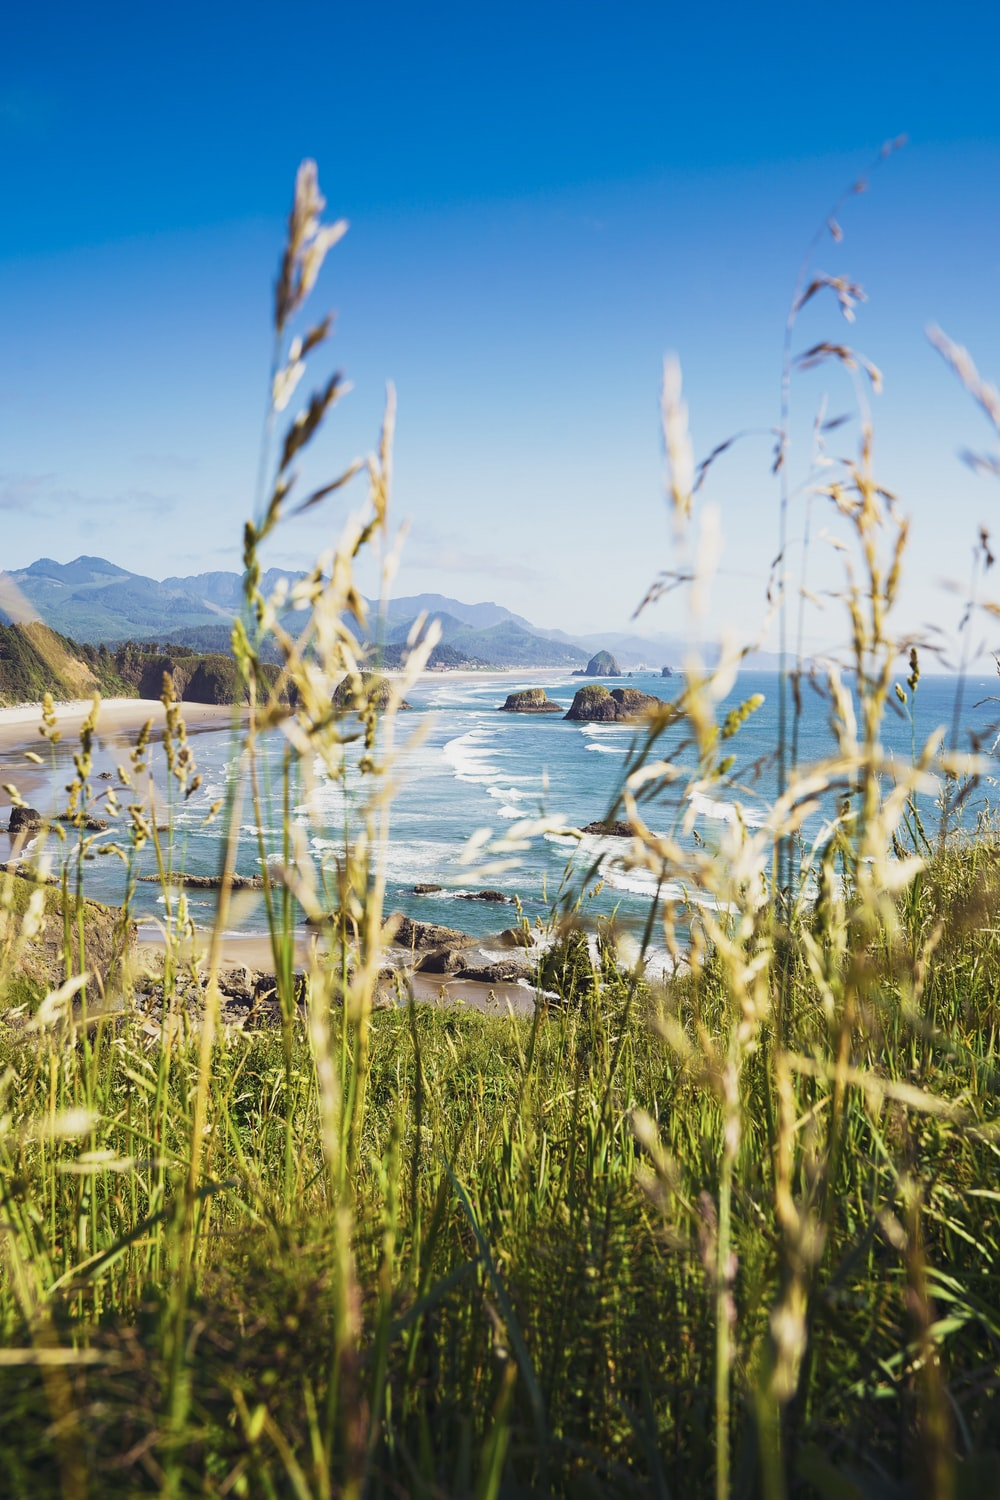 green grass with seashore background